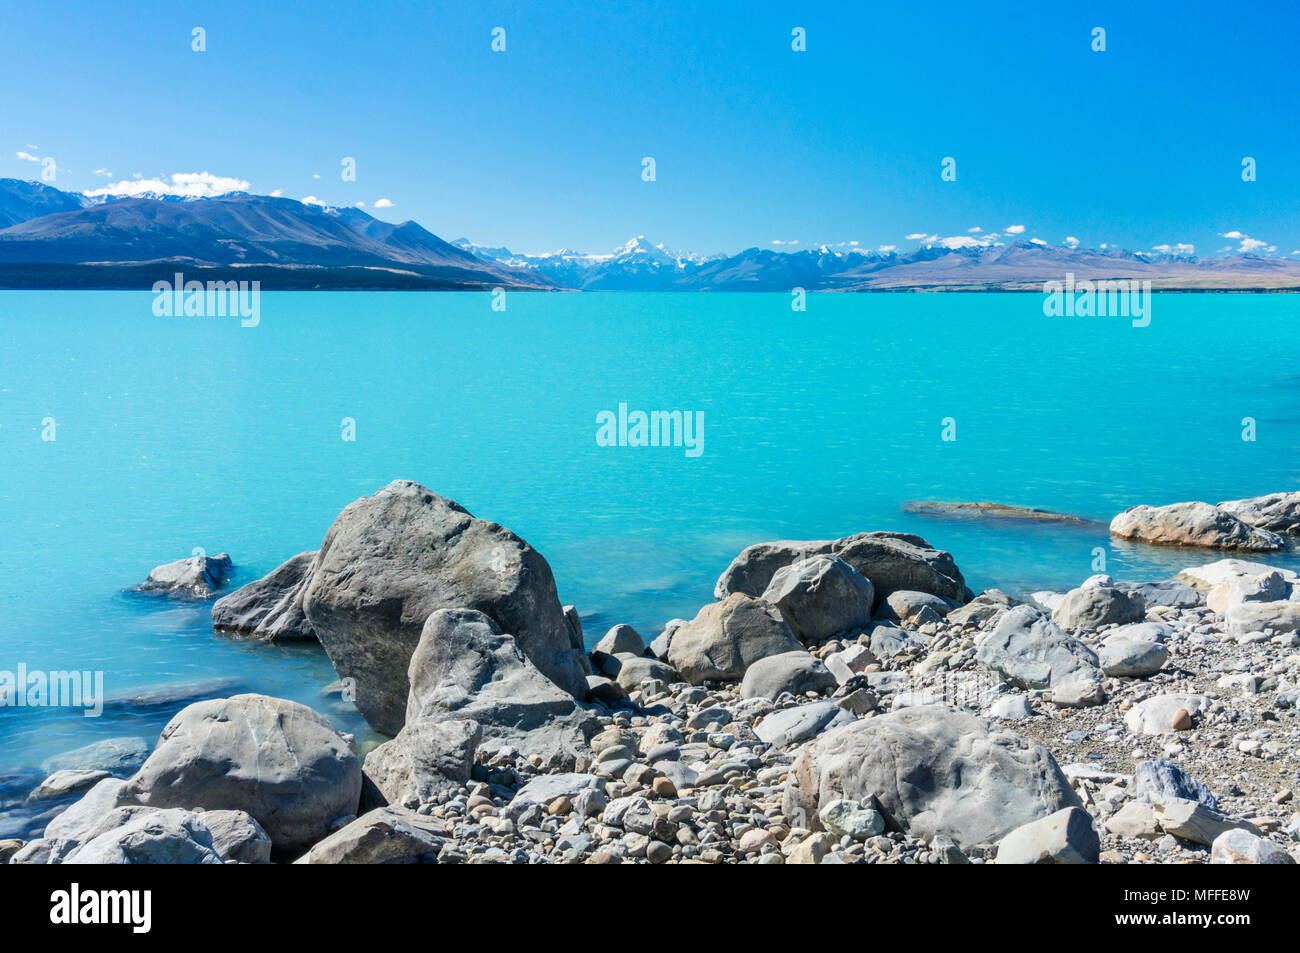 new zealand south island new zealand view of mount cook from the shore of lake pukaki mount cook national park new zealand south island southland - Stock Image